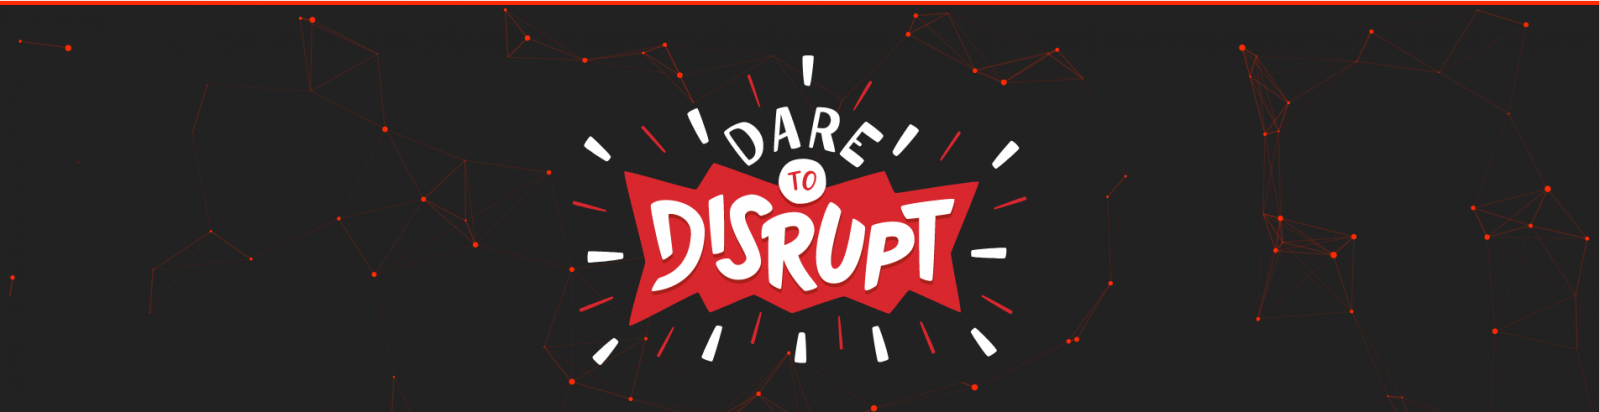 Dare to Disrupt